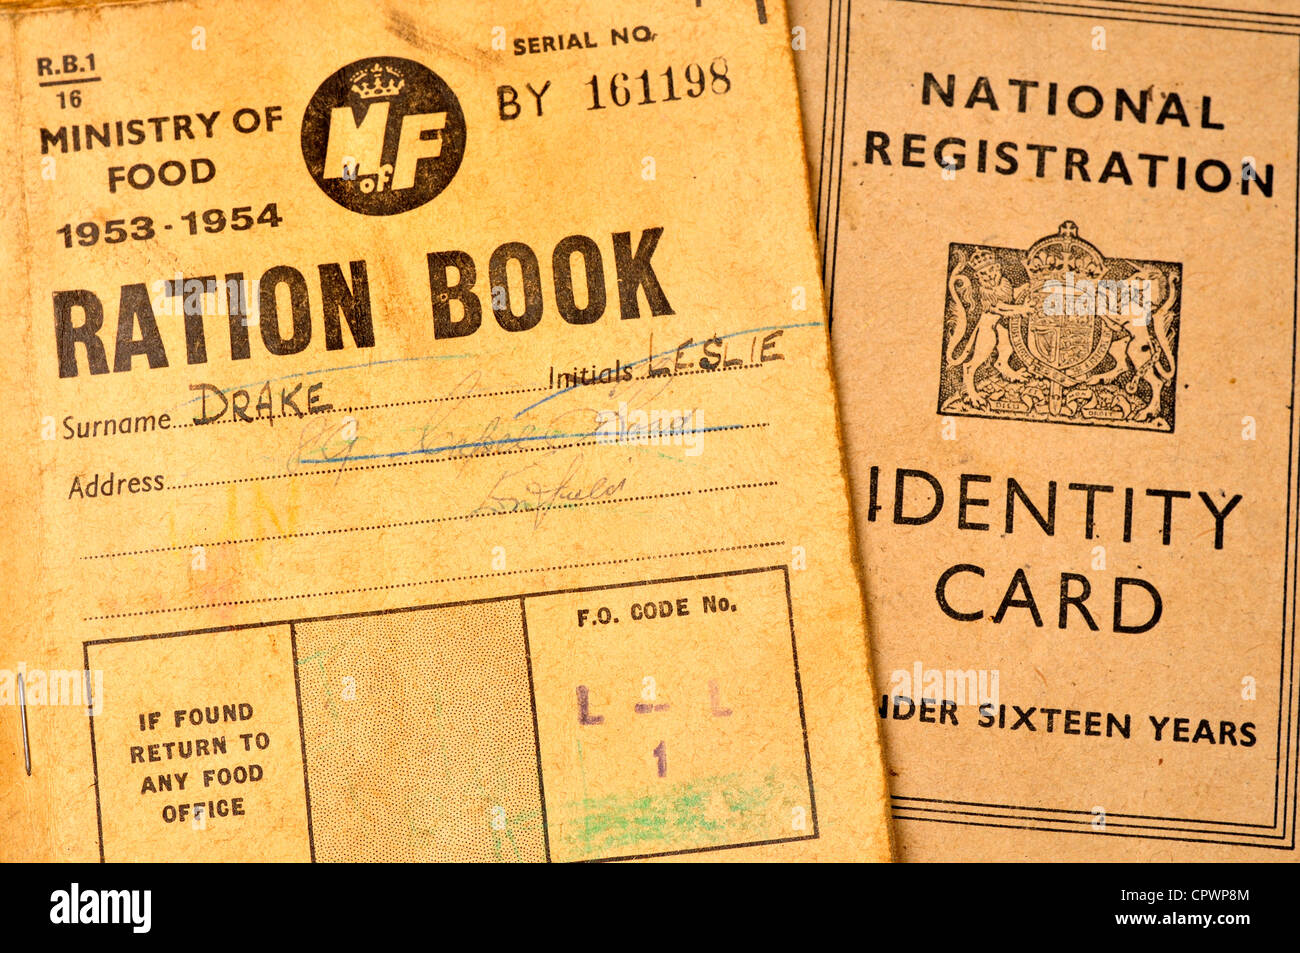 Post World War 2 Ration Book And Identity Card Stock Photo